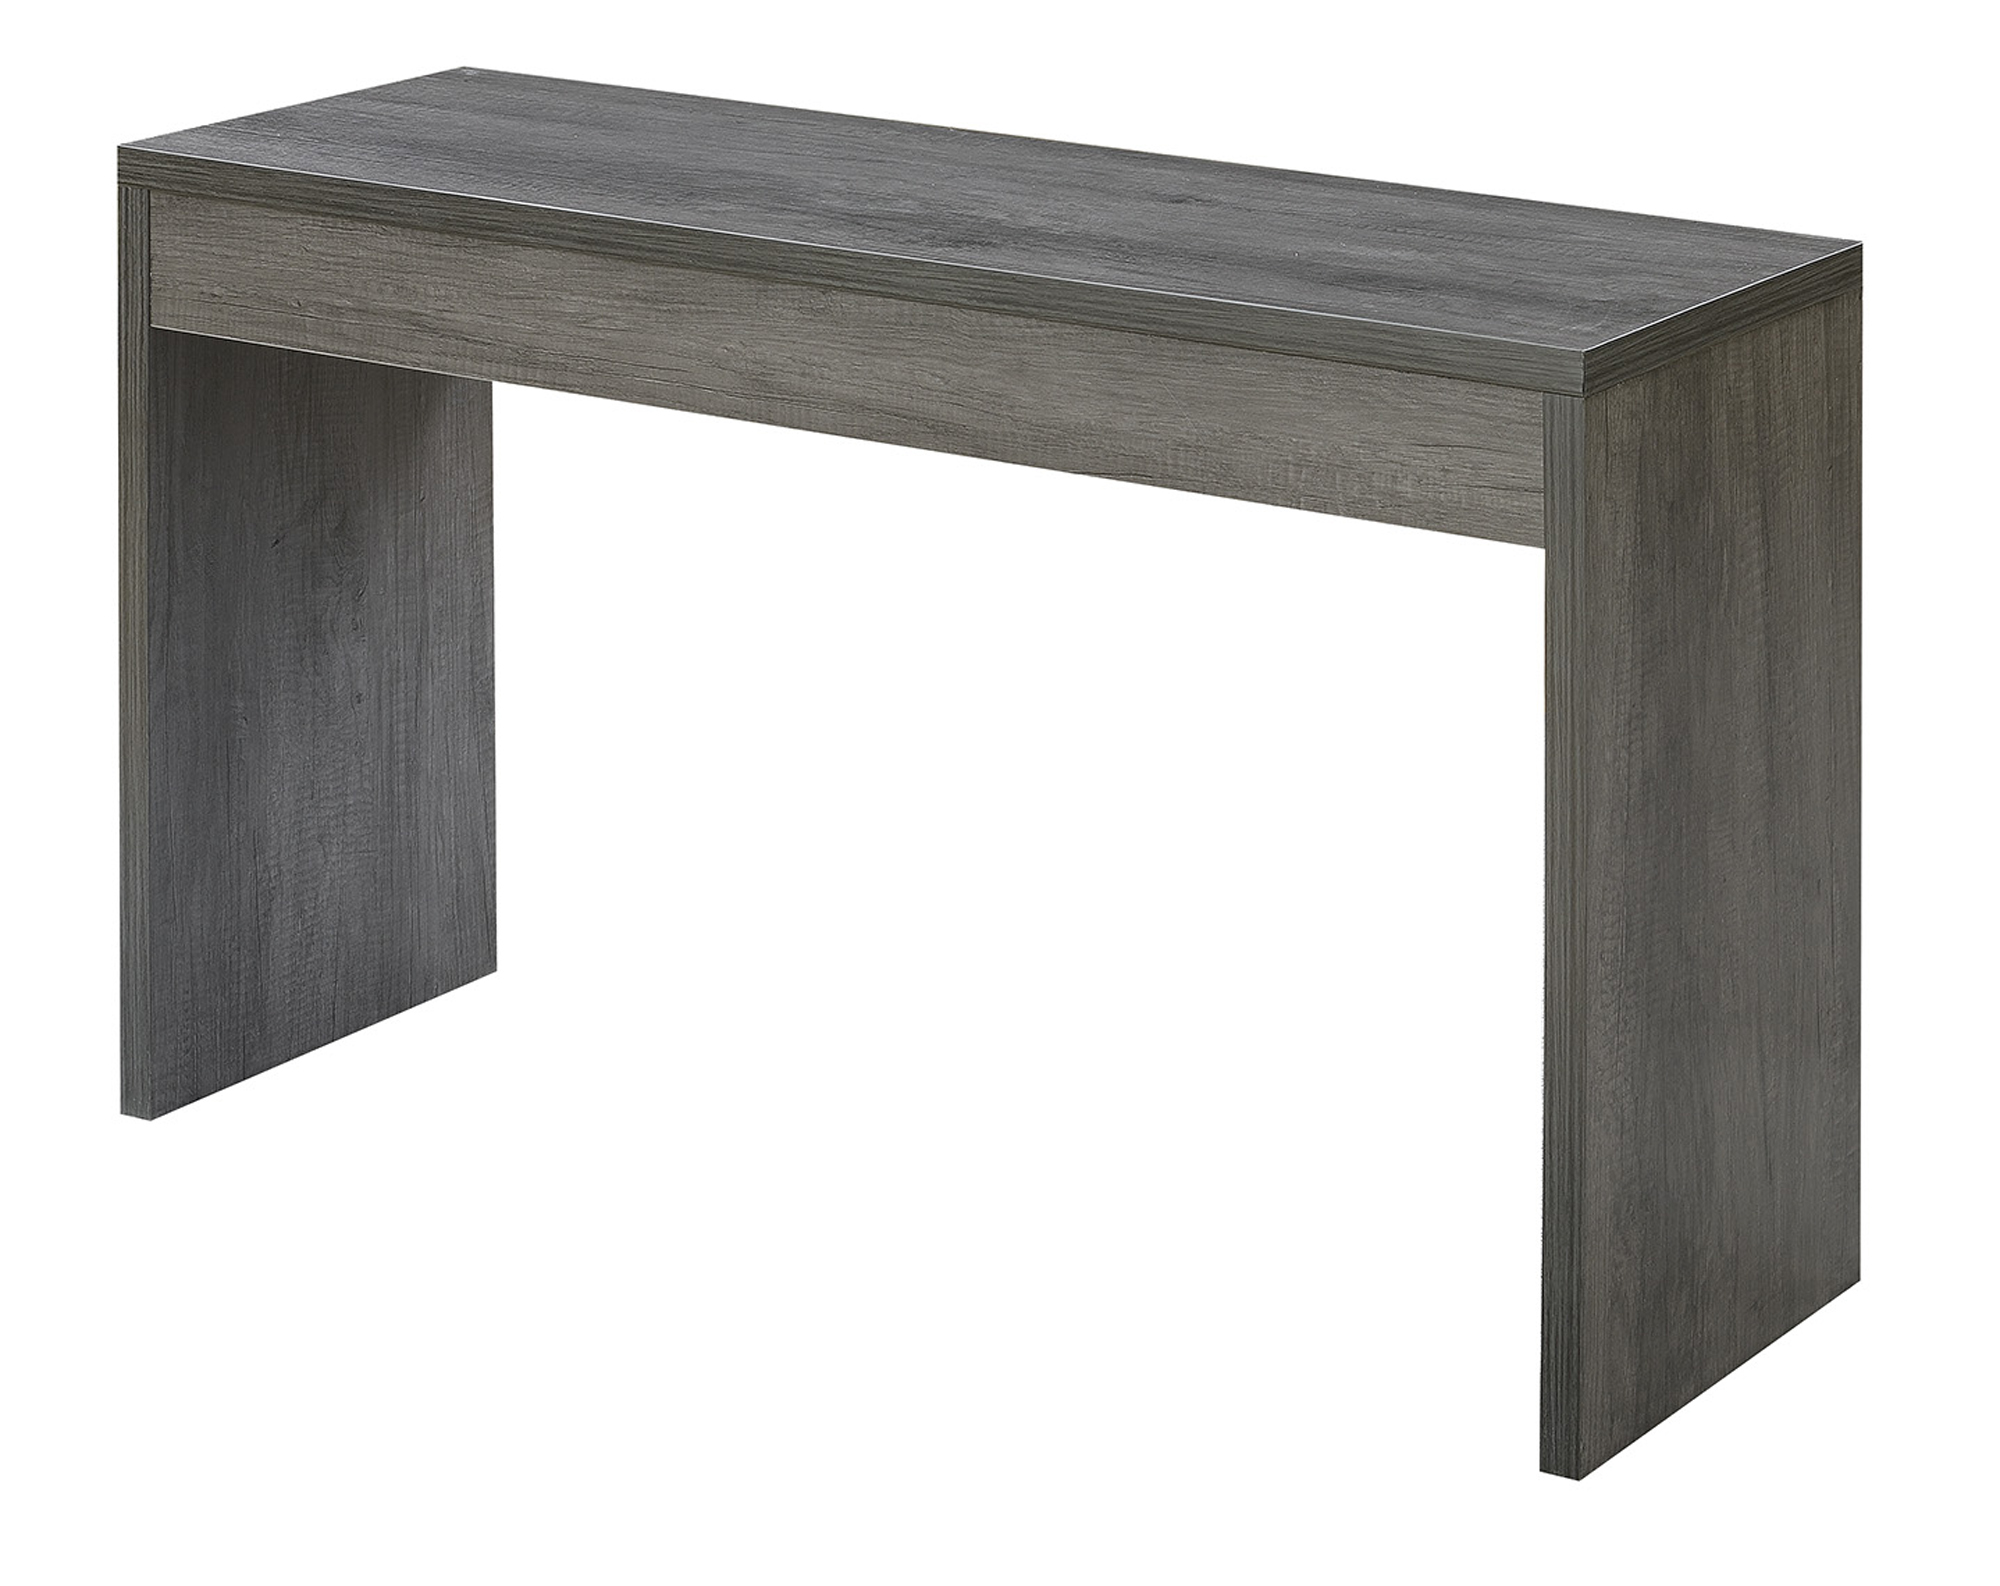 Convenience Concepts 111091WGY Northfield Hall Console Table, Weathered Grey